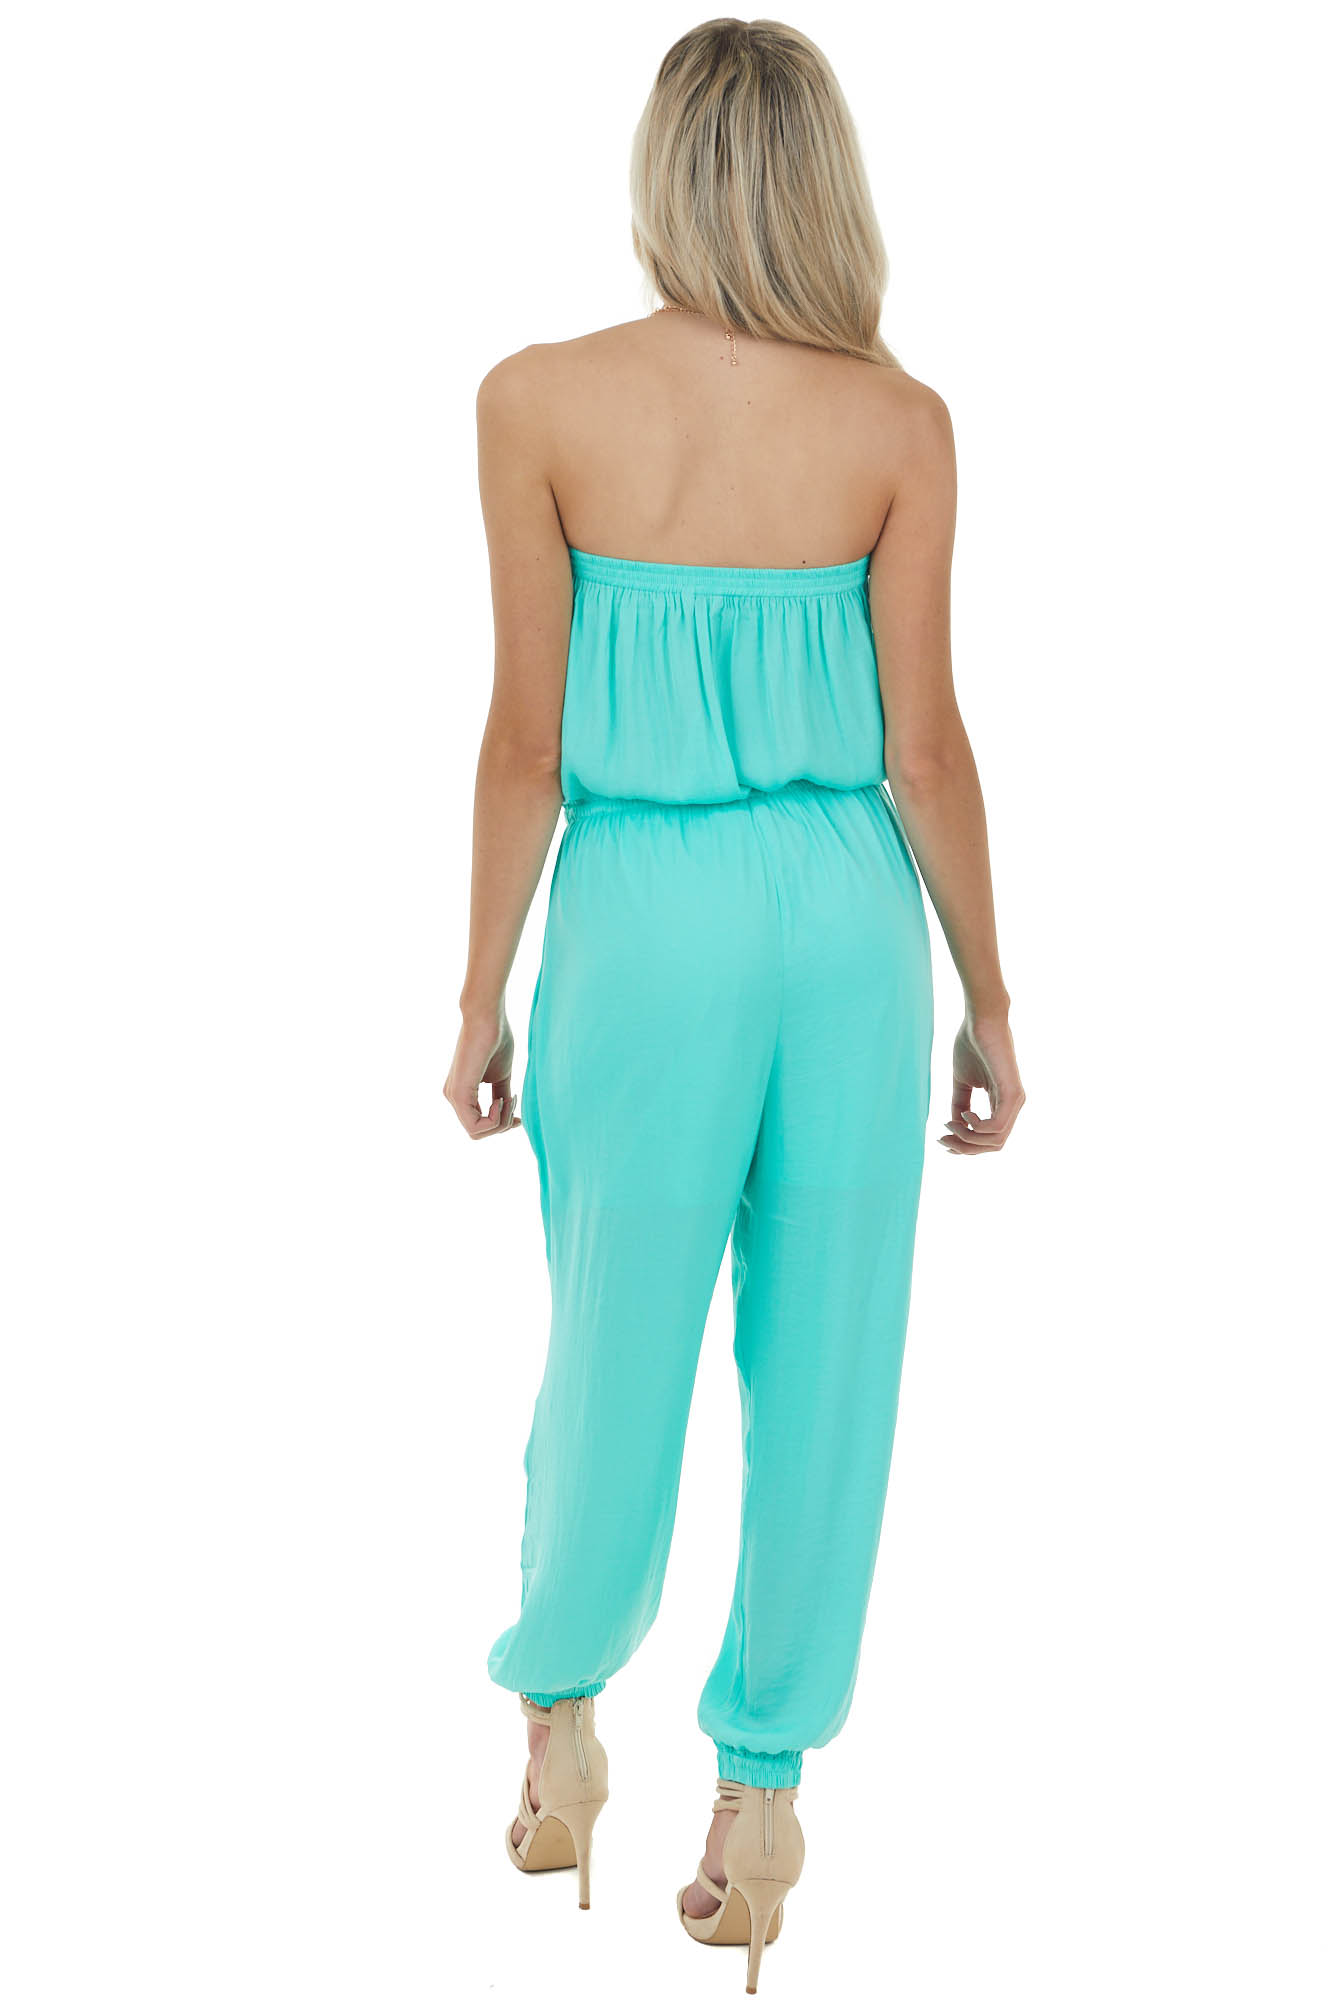 Aqua Silky Strapless Jumpsuit with Elastic Waist and Tie